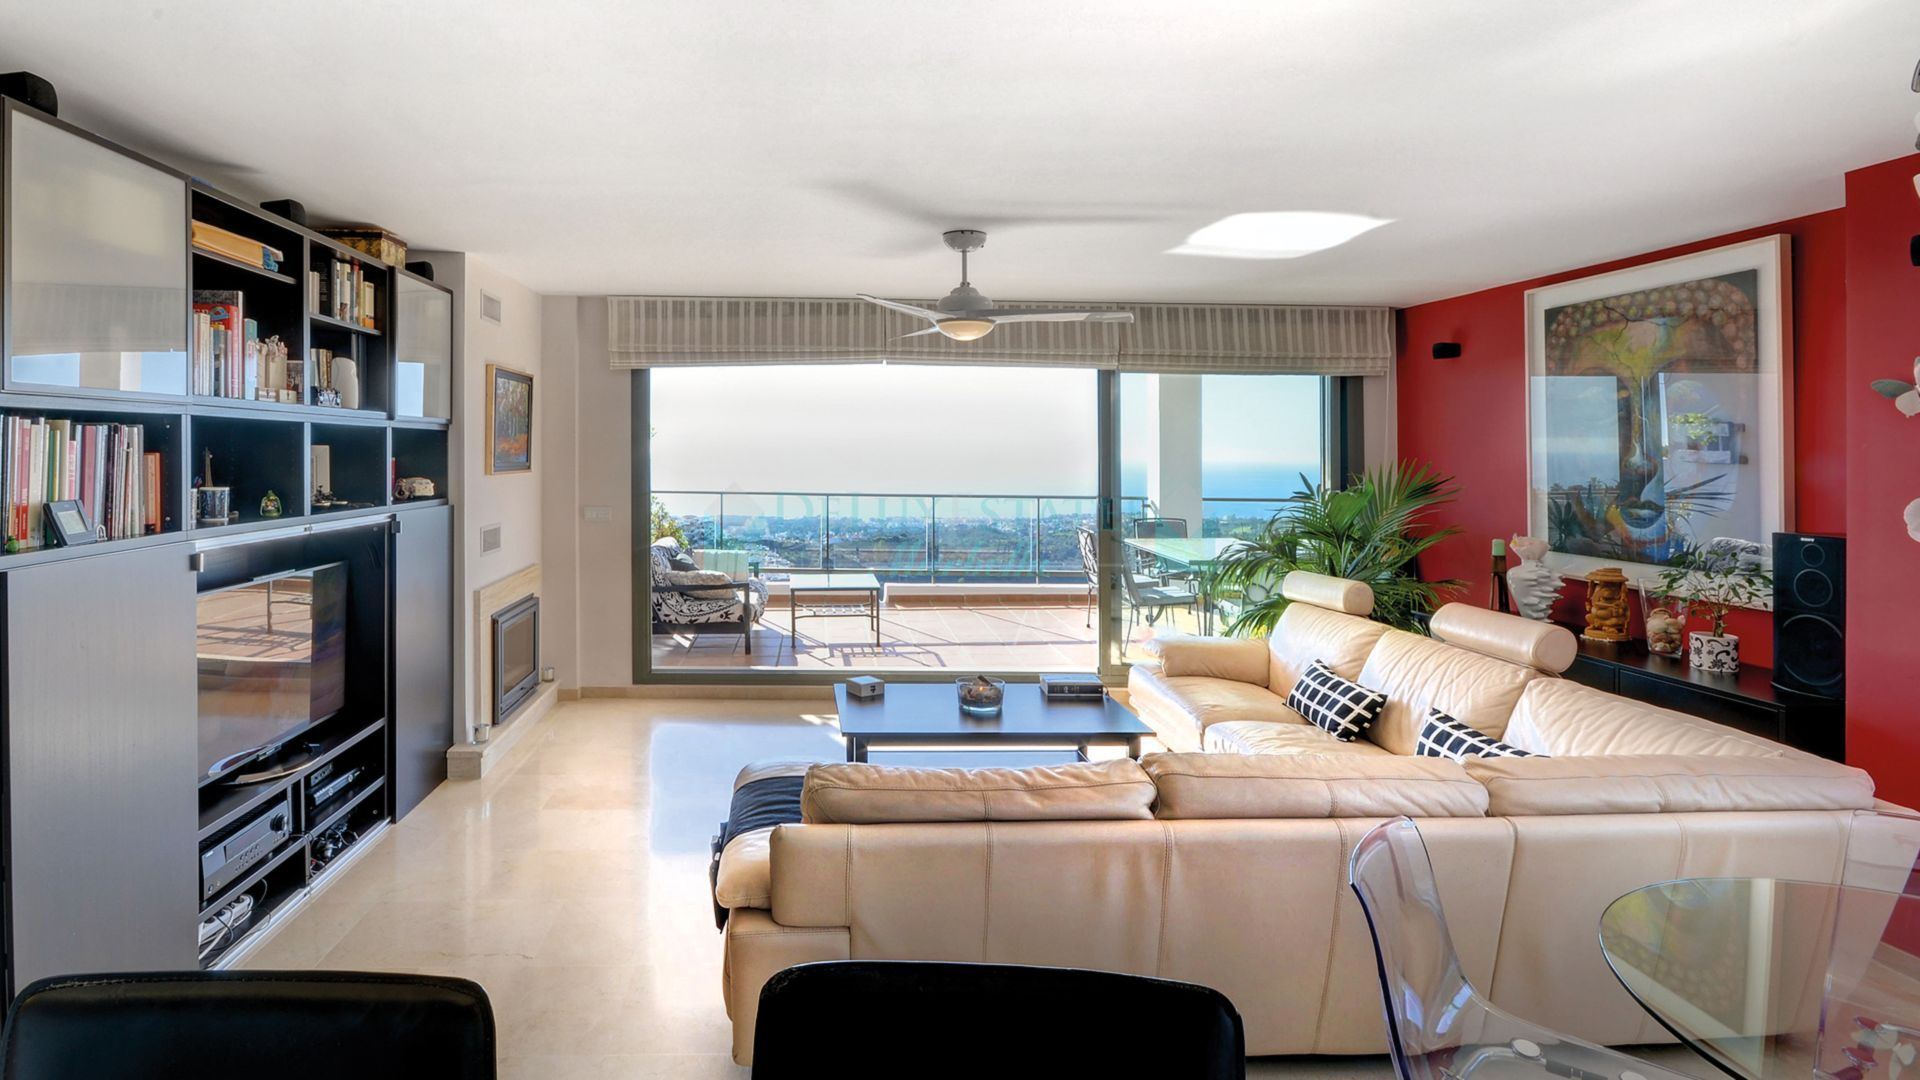 Apartment for sale in Calahonda, Mijas Costa